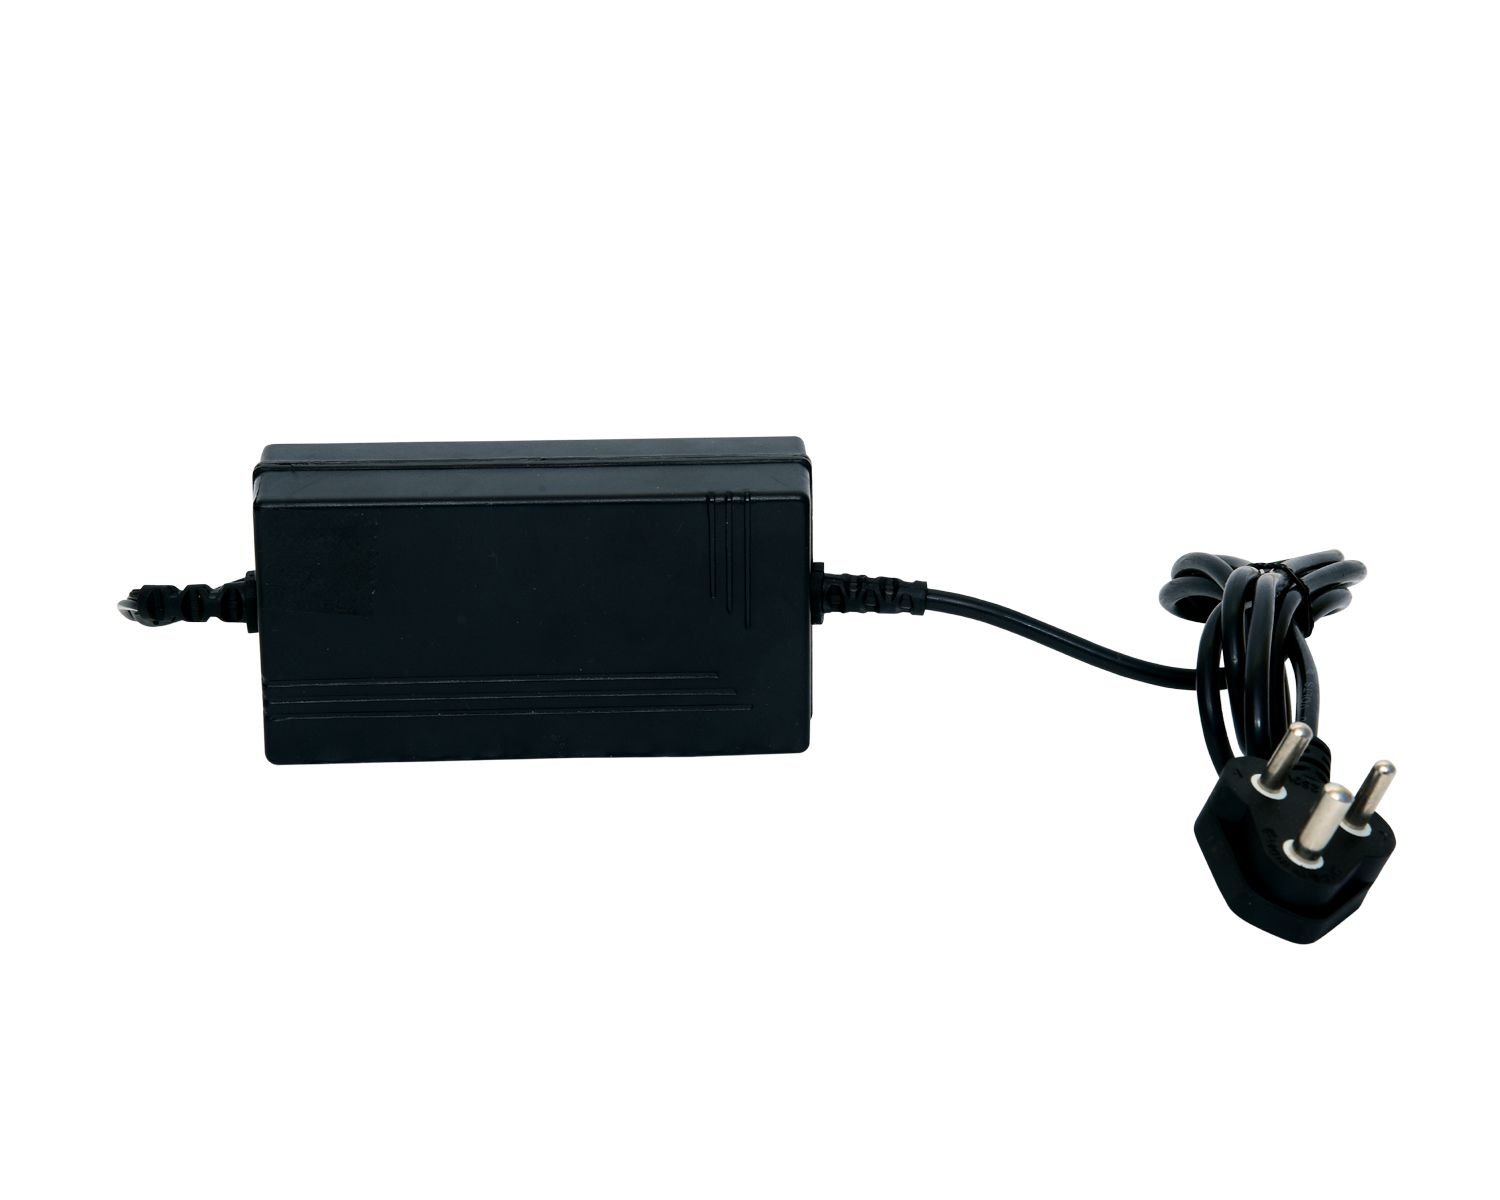 hight resolution of ro service smps 24v power supply for ro price in india buy ro service smps 24v power supply for ro online on snapdeal